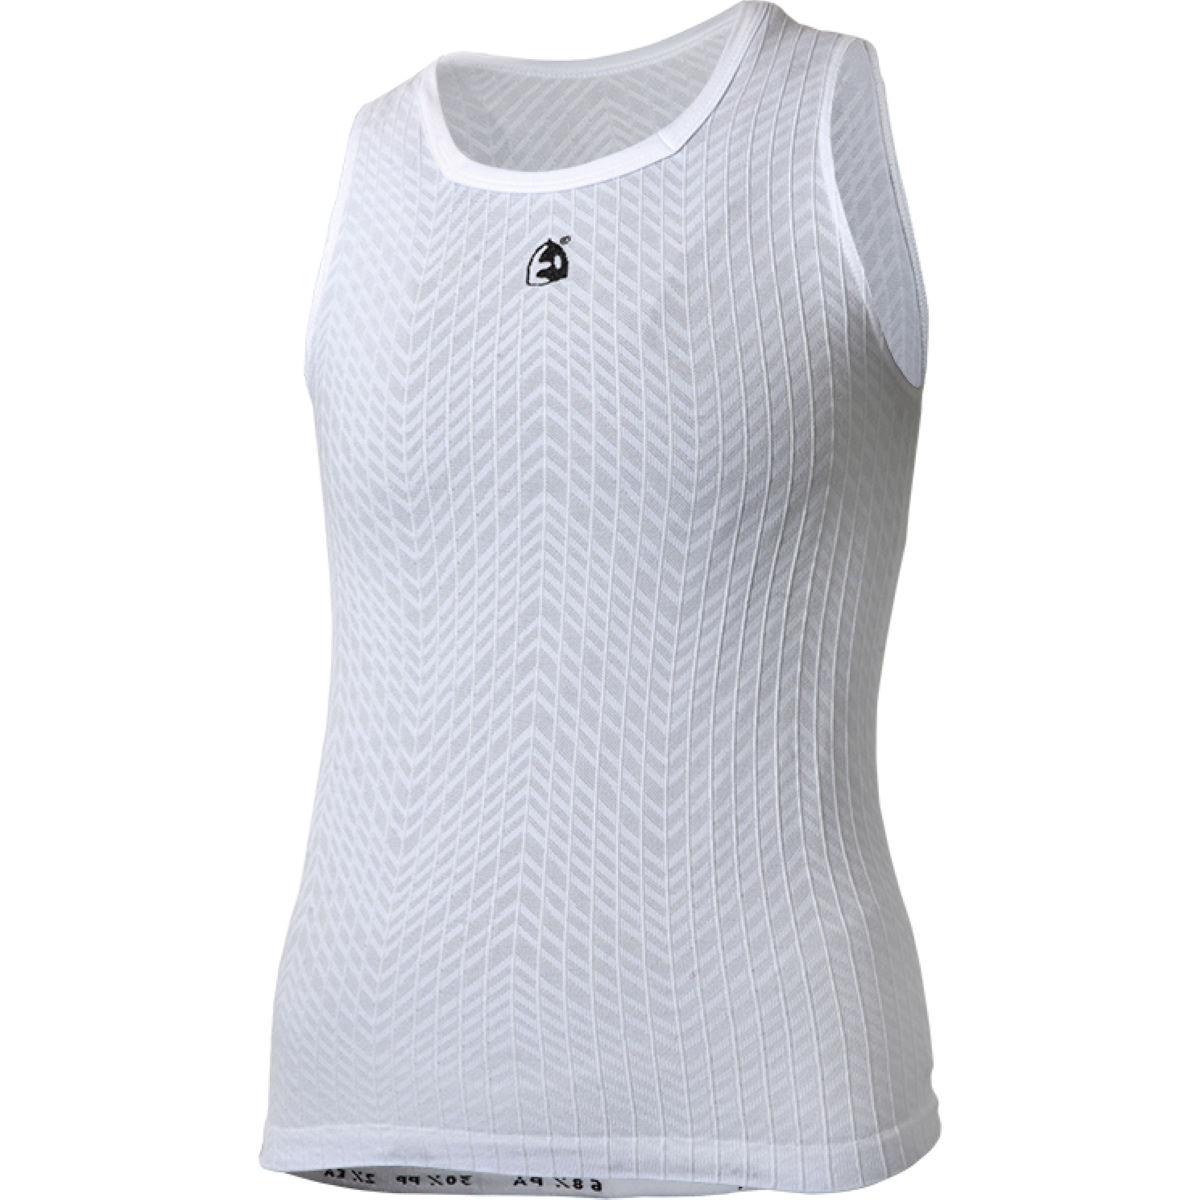 Etxeondo women s airea sleeveless base layer base layers white aw14 22504s m